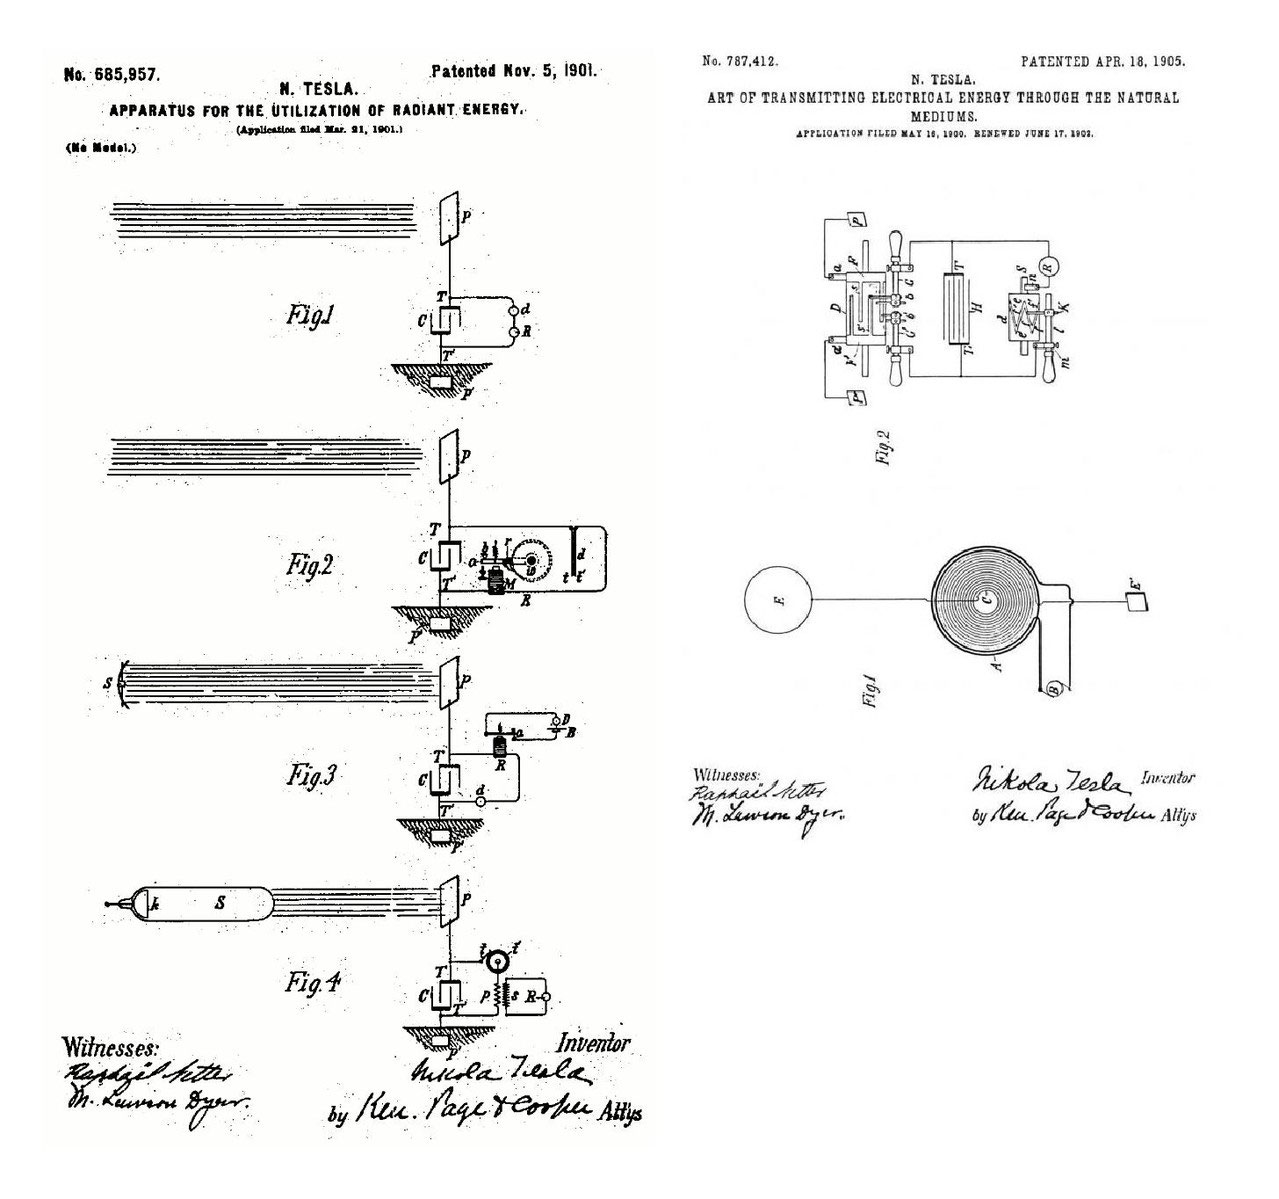 Teslas Radiant Energy Open Tesla Research Leland Faraday Motor Wiring Diagram Us787412 Art Of Transmitting Electrical Through The Natural Mediums April 18 1905